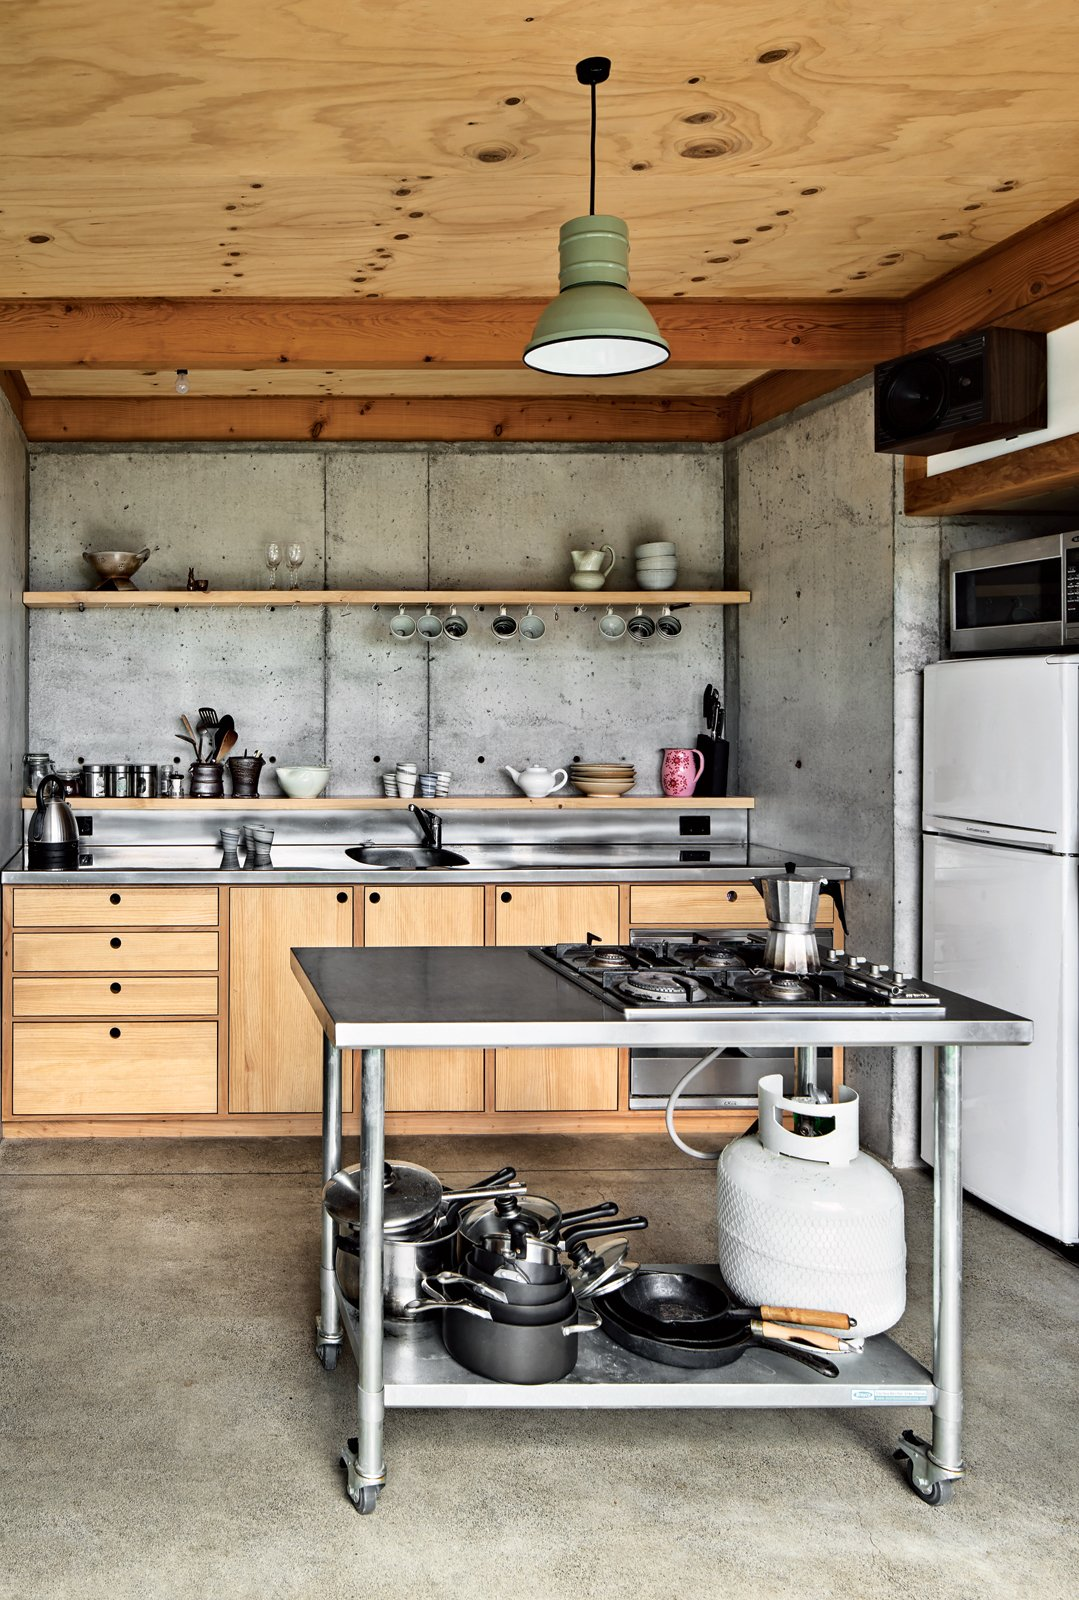 """Kitchen, Concrete Floor, Metal Counter, Pendant Lighting, and Concrete Backsplashe The designers fabricated everything in the house, down to the quarter-sawn pine and macrocarpa-wood kitchen cabinetry and concrete floor. """"Physically the most challenging part of the build was wrestling an incredibly slippery concrete pump up the muddy driveway in the rain!"""" says designer Ben Mitchell-Anyon. The enamel pendant light is vintage. Photo by: Paul McCredie  Ceilings"""